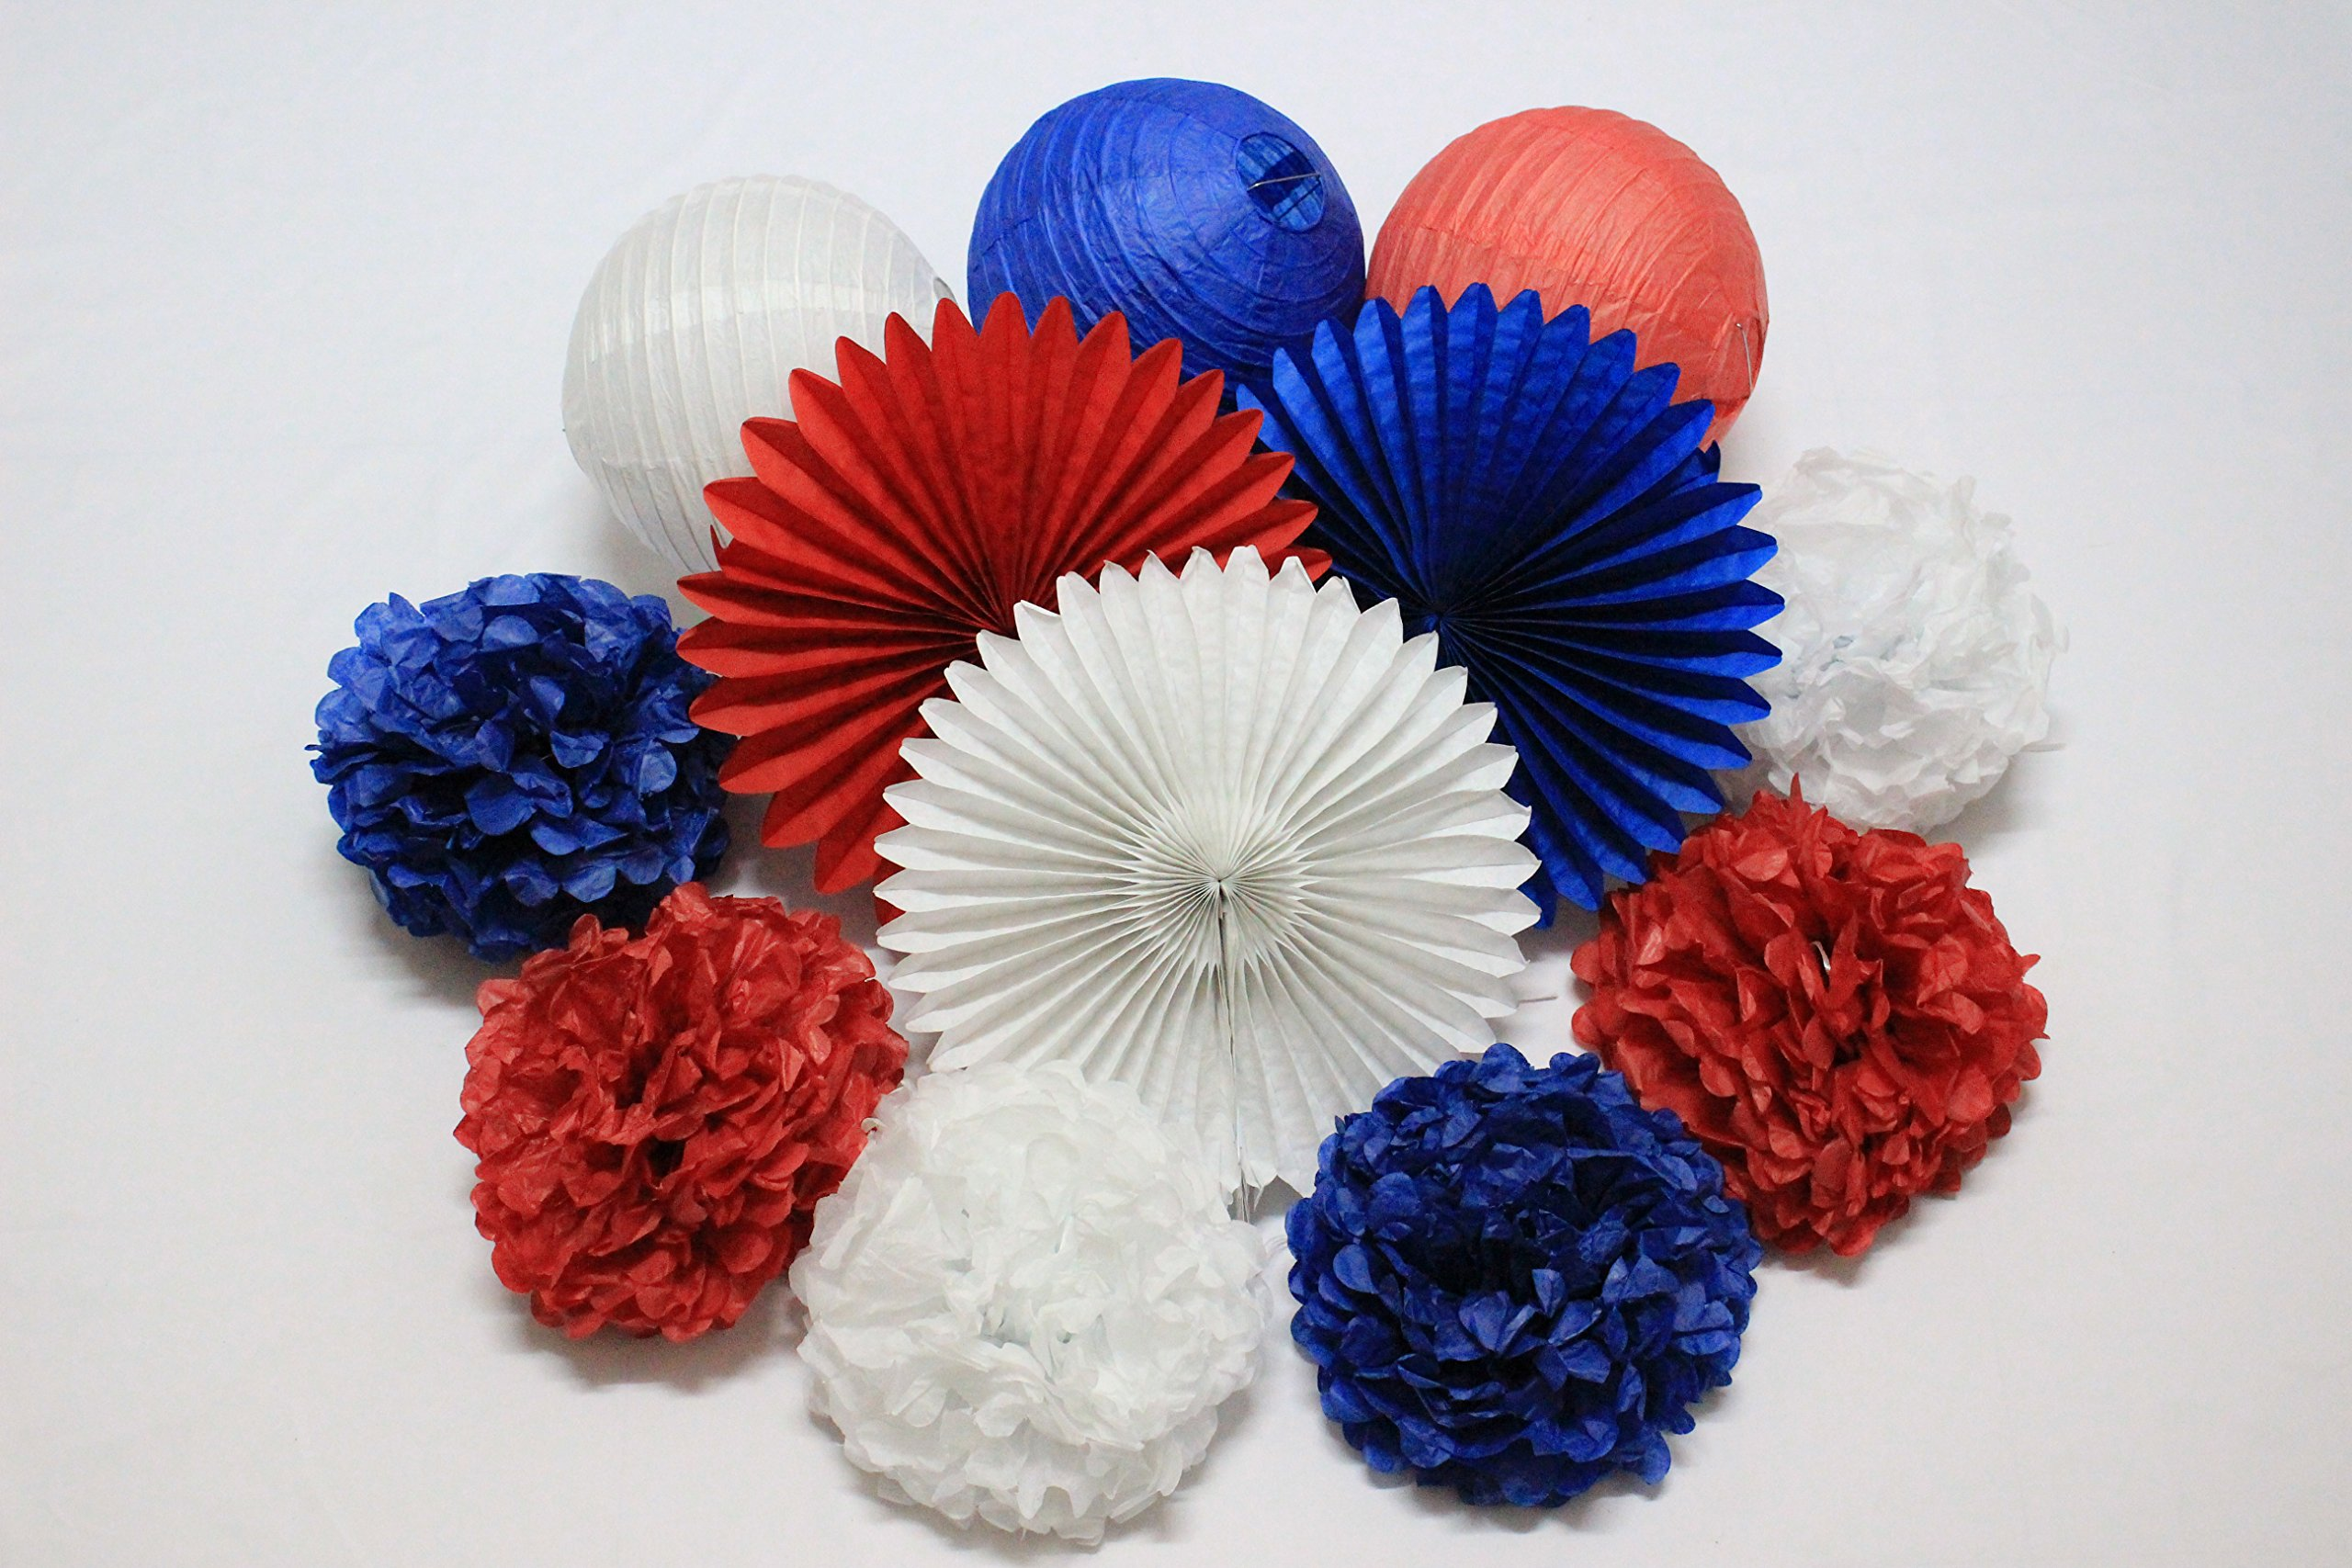 12 pcs Party Decor Royal Blue Red White Tissue Paper Pom Poms Paper Lanterns Tissue Folding Fan Captain America Party Supplies Wedding Patriotic 4th of July Party Decoration by MRMSLI